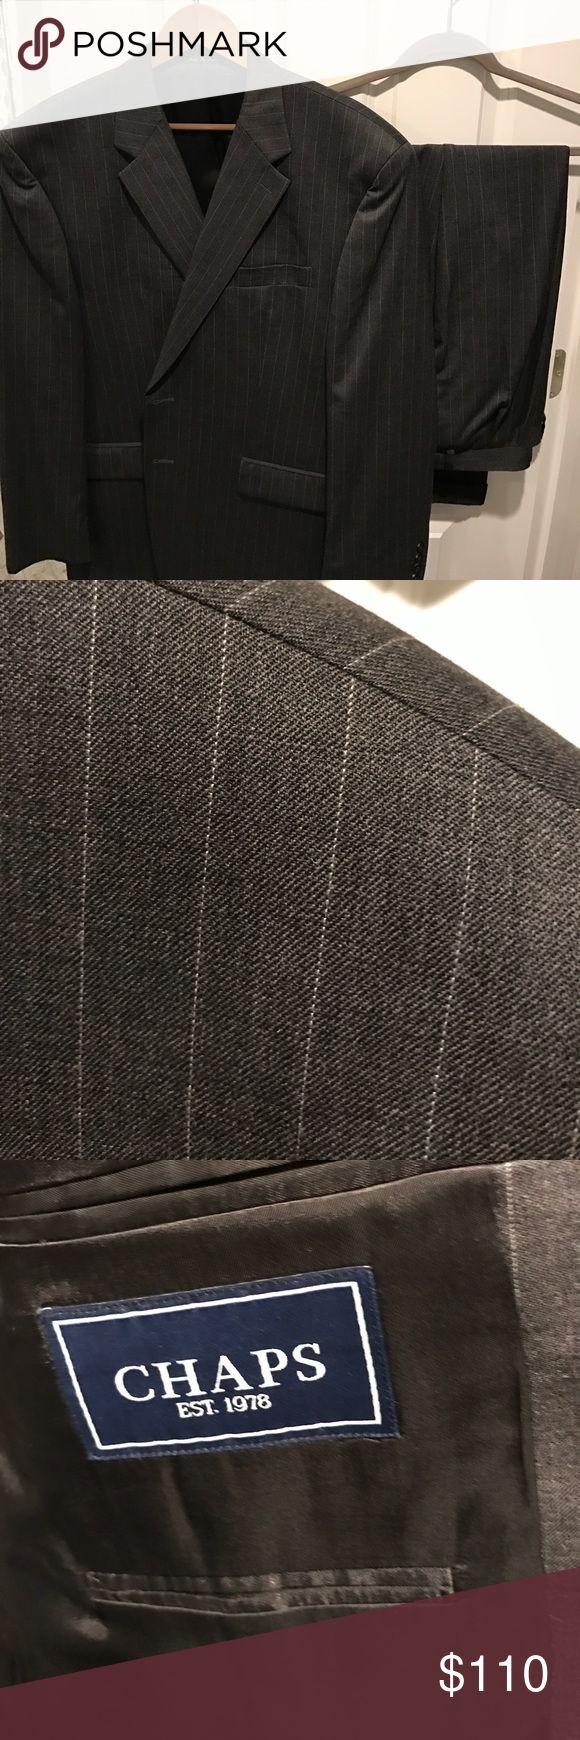 Chaps grey pinstripe suit separates; Jacket/pants Grey pinstripe Chaps suit separates. Jacket size 46R, pants 42x30. Single vented jacket, pleated and cuffed pants. Good condition. Chaps Suits & Blazers Suits